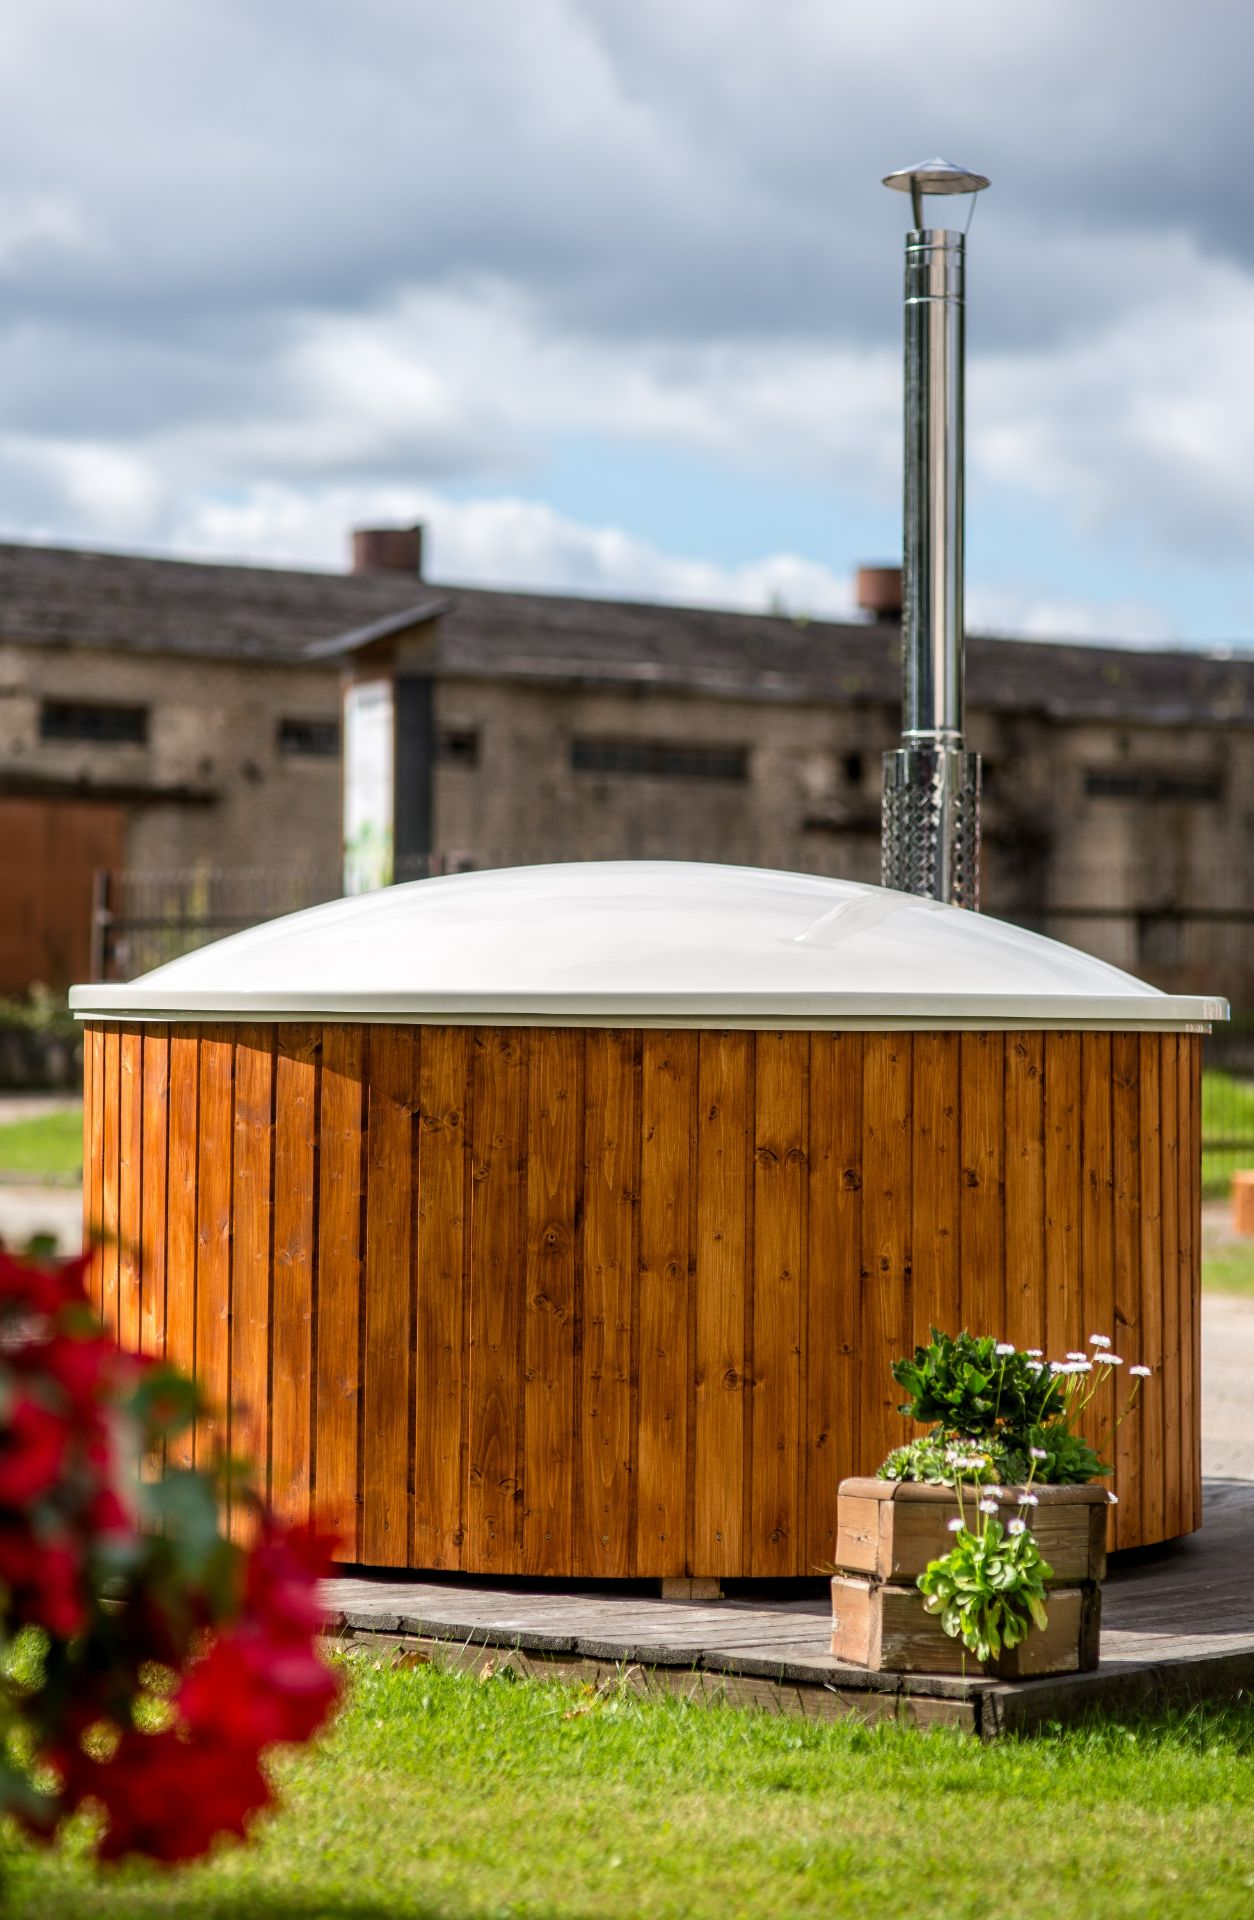 + VAT Brand New Luxurious Extra Large Thermo Wood 1.8m Hot Tub With Air Bubble & Hydro Massage - Image 3 of 4